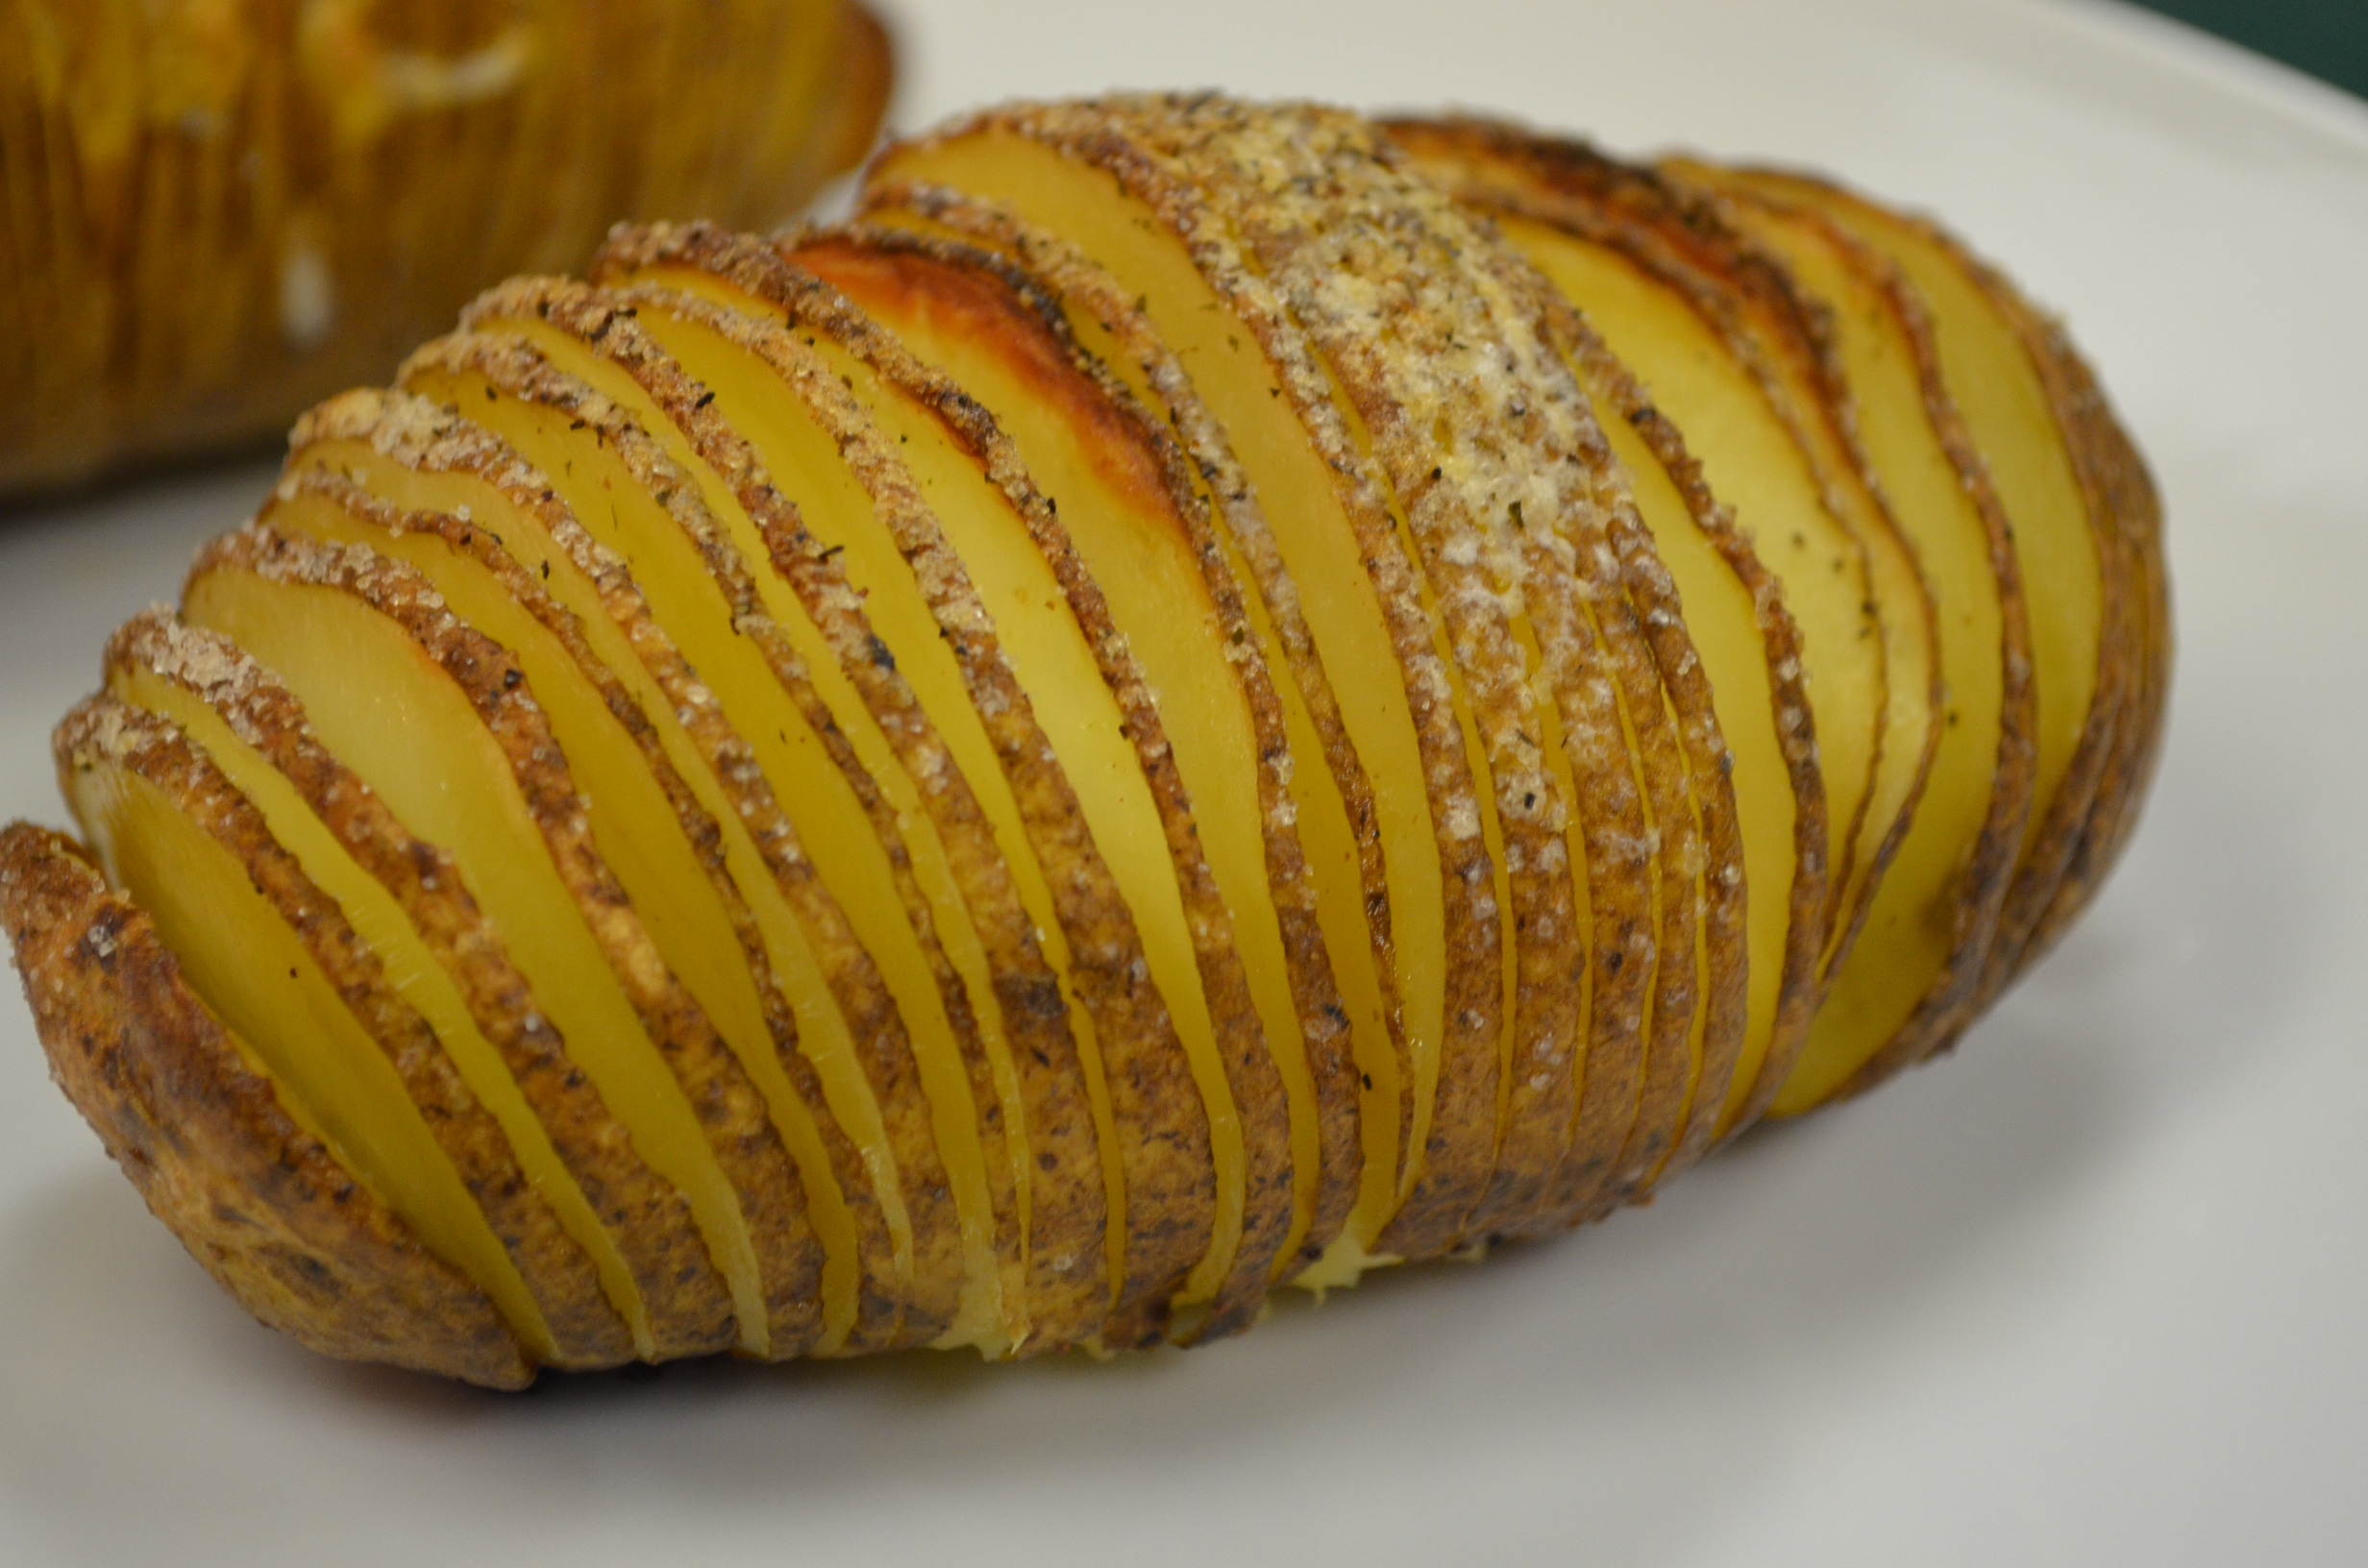 ... potatoes slow cooker baked potatoes twice baked potatoes on the grill